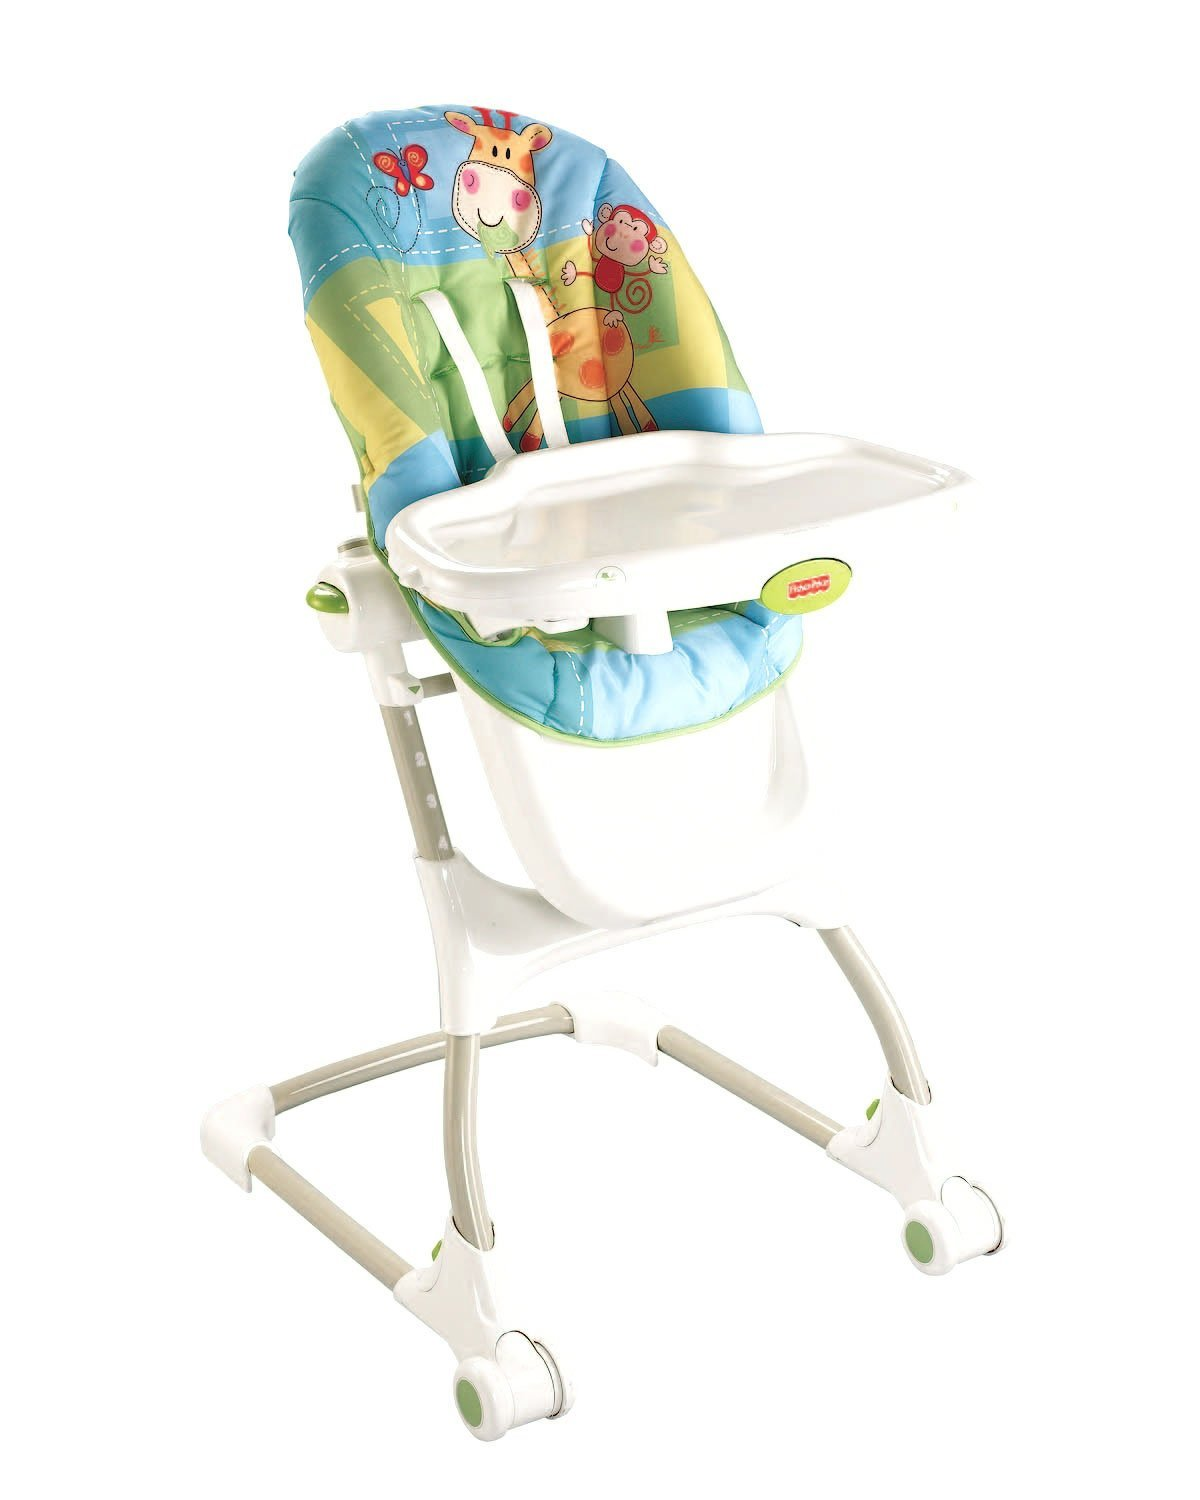 walmart travel high chair leather barrel chairs swivel fisher price discover 39n grow ez clean only 59